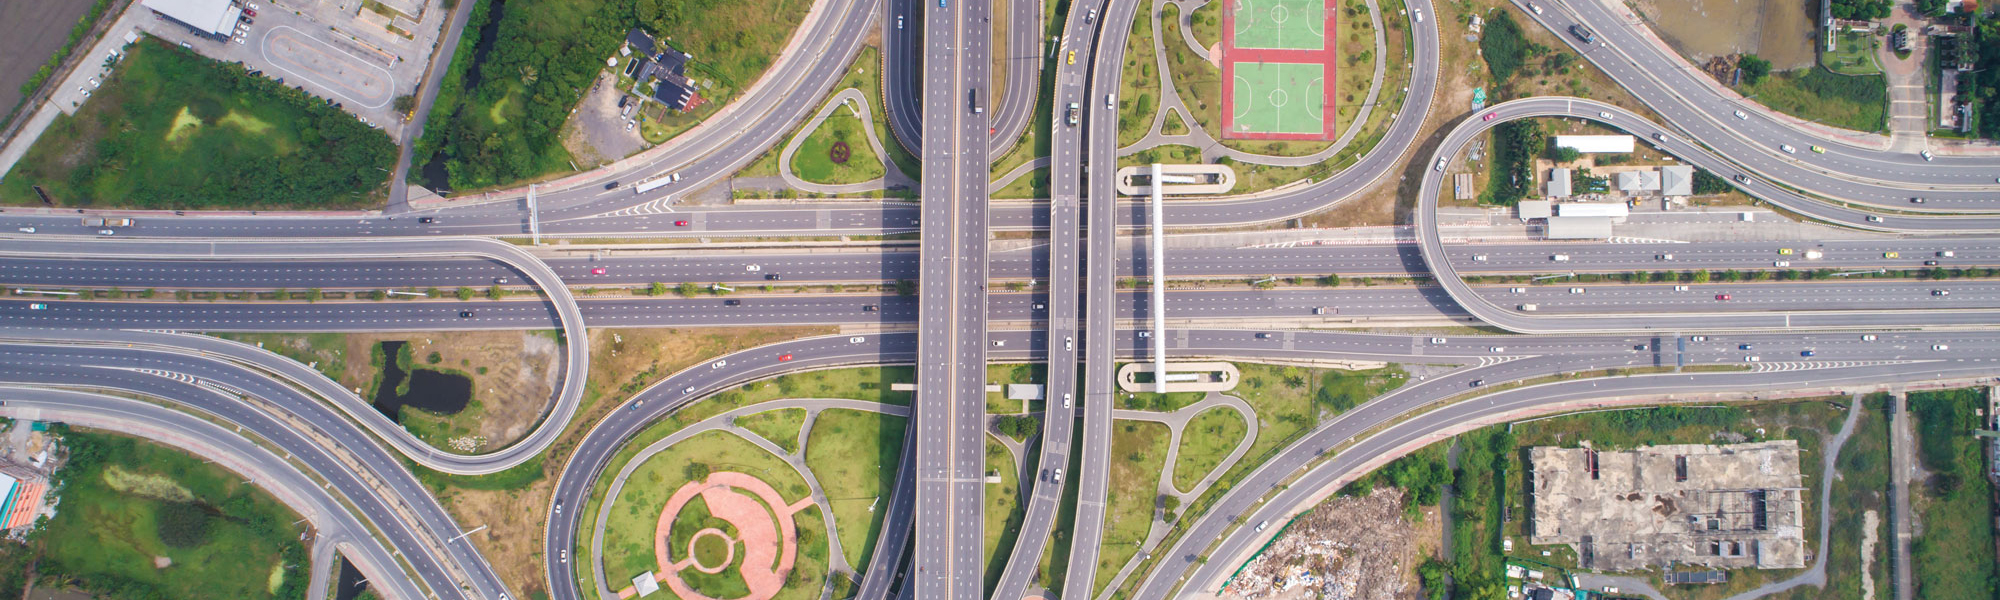 Road intersection from above, via Shutterstock